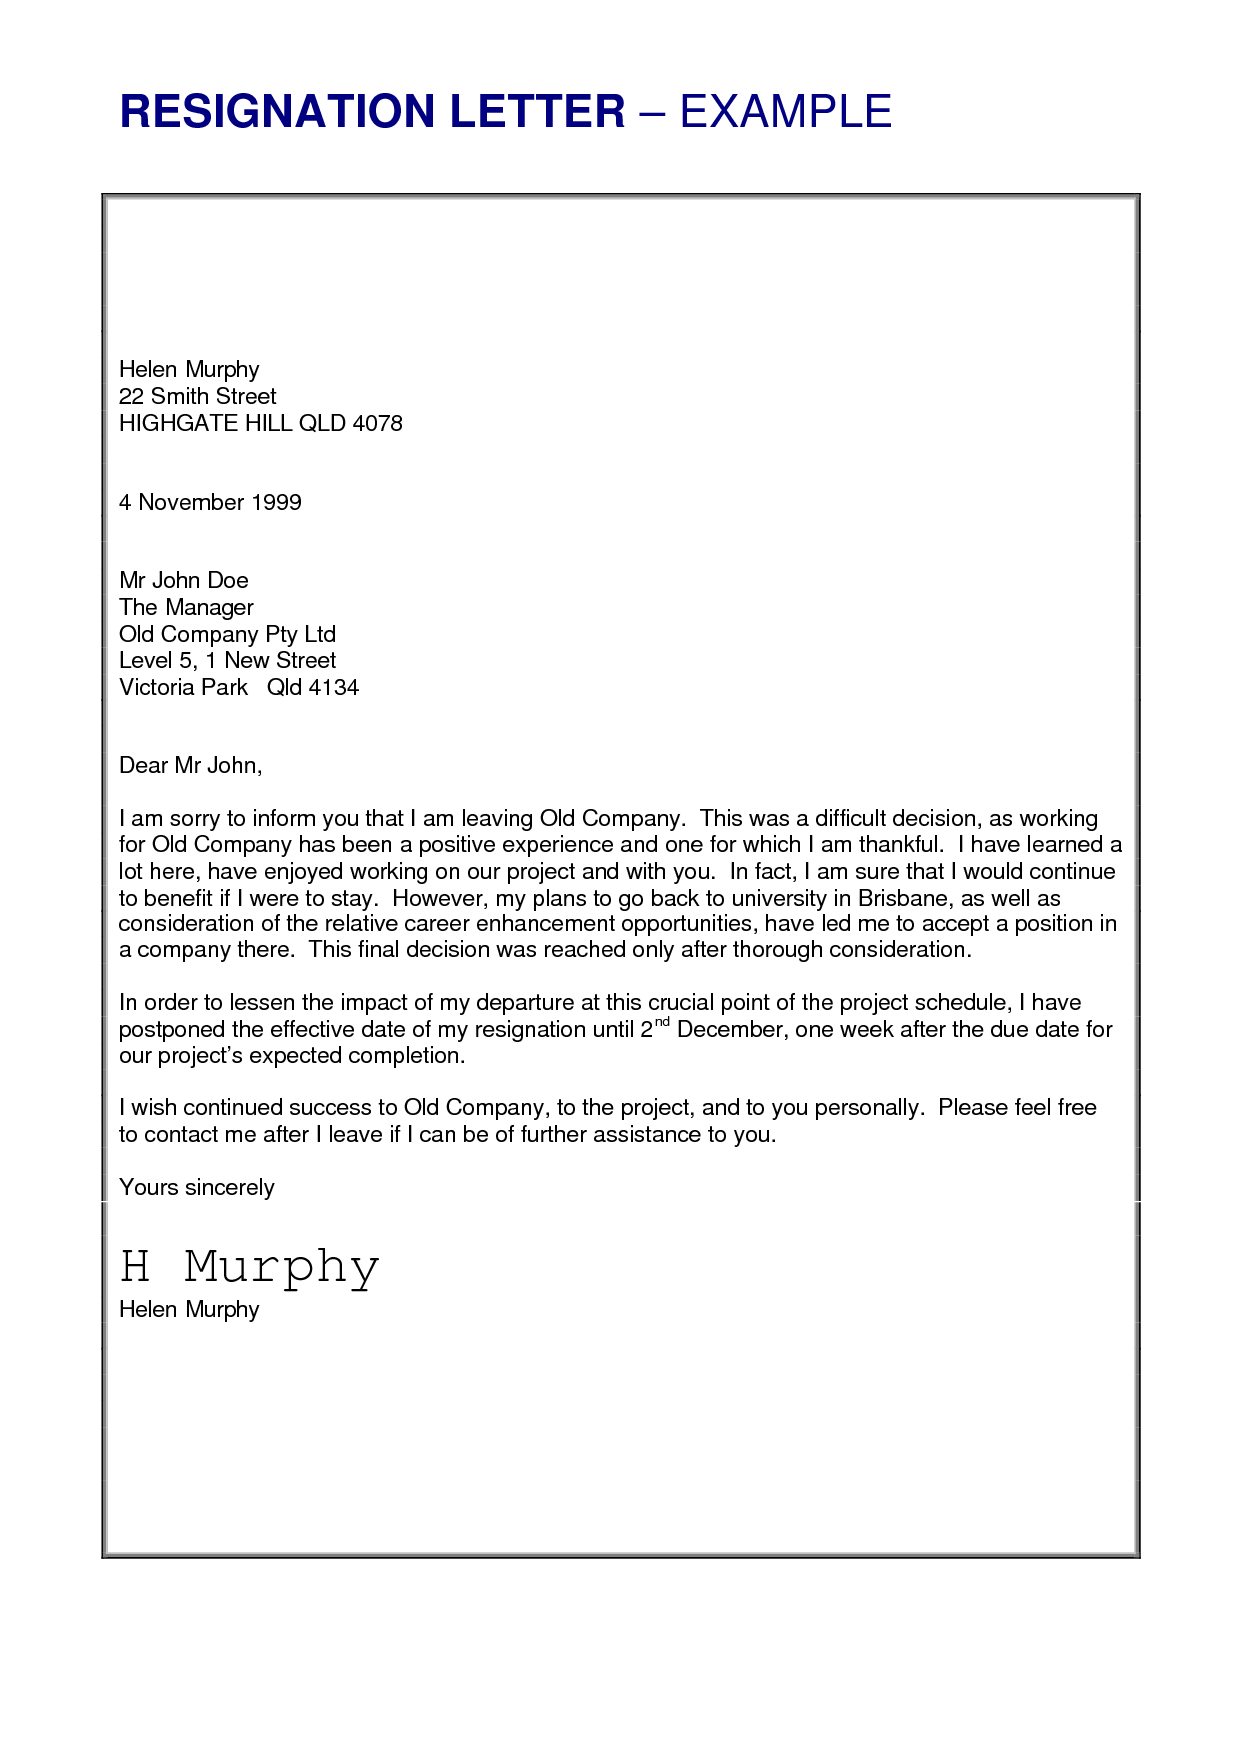 Resigning Letter Sample Resignation Letter Samples Template